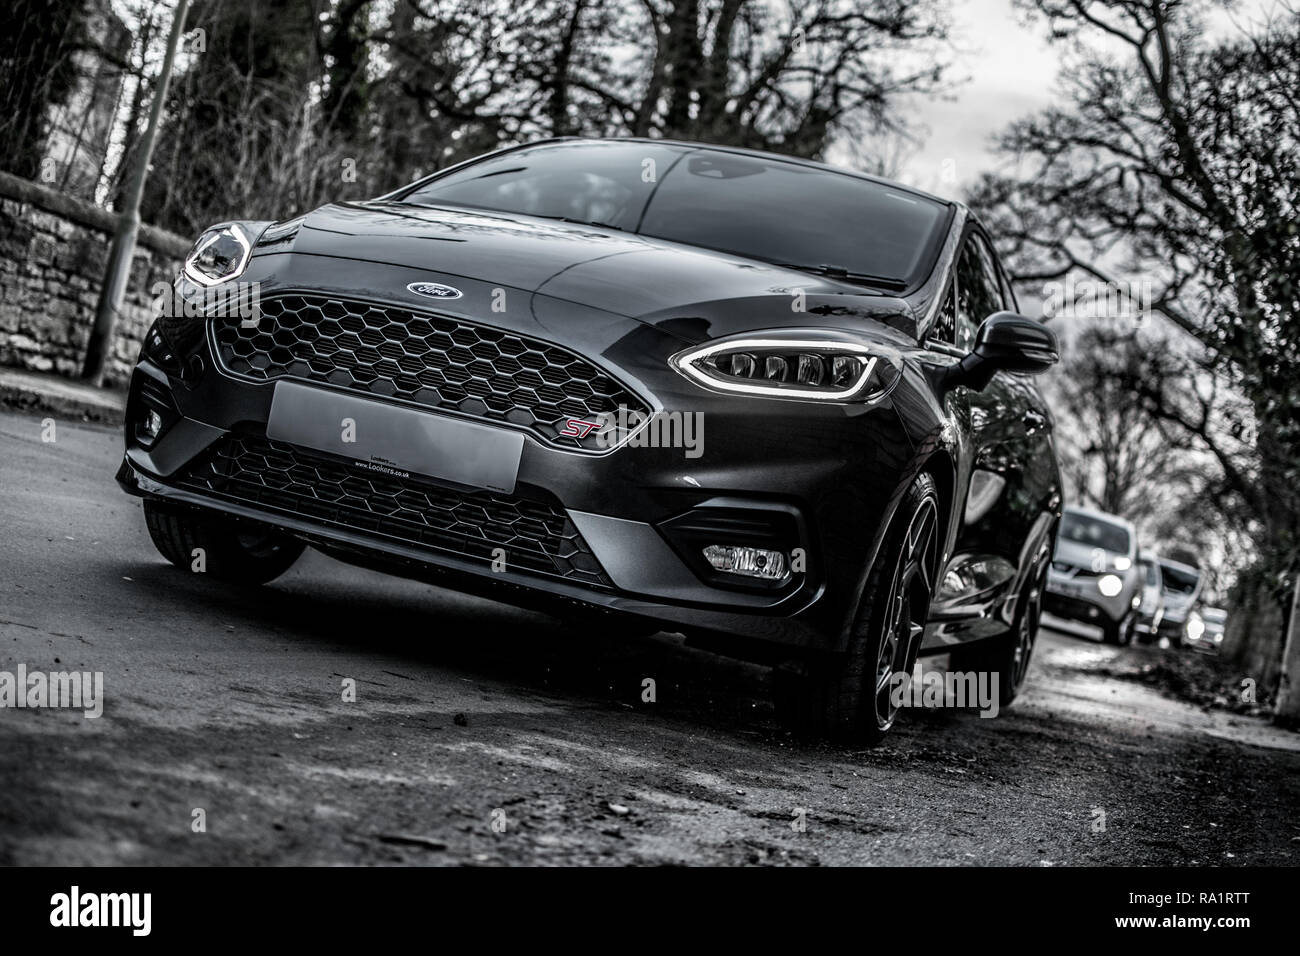 2018 Ford Fiesta St 3 Performance Pack Stock Photo Alamy